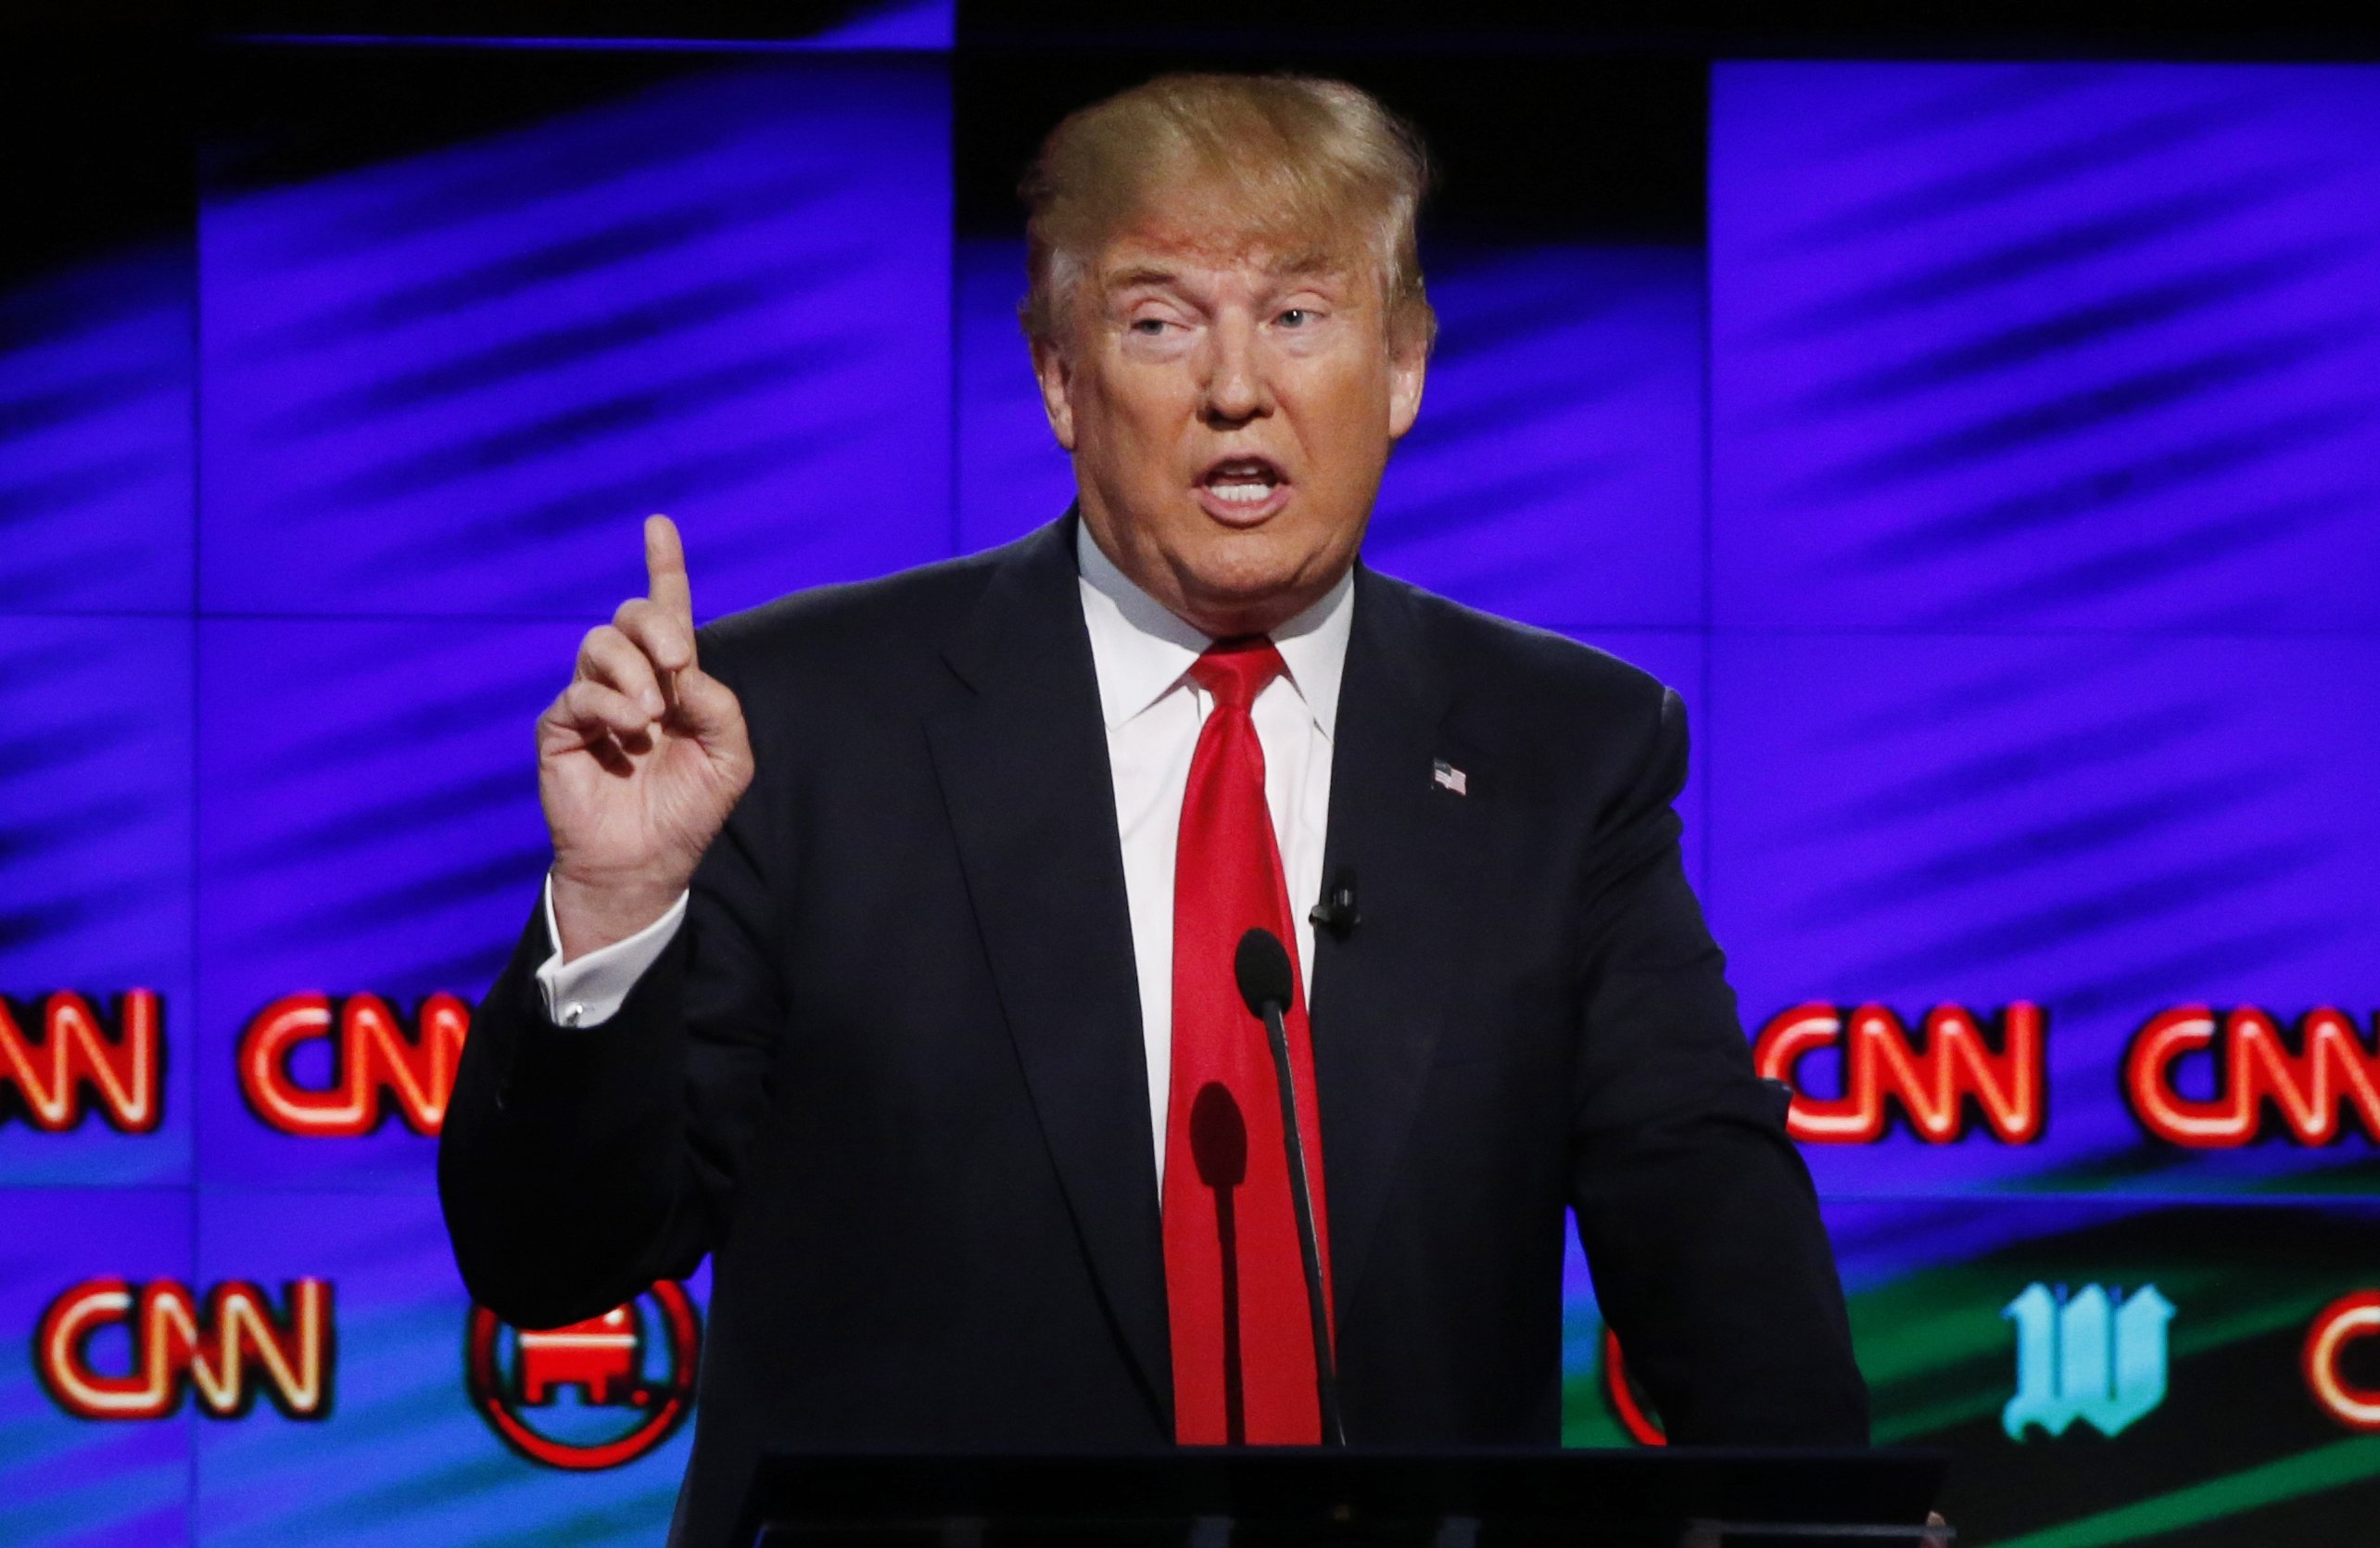 Republican presidential candidate Donald Trump speaks during the Republican presidential debate sponsored by CNN, Salem Media Group and the Washington Times at the University of Miami, in Coral Gables, Fla., March 10, 2016.